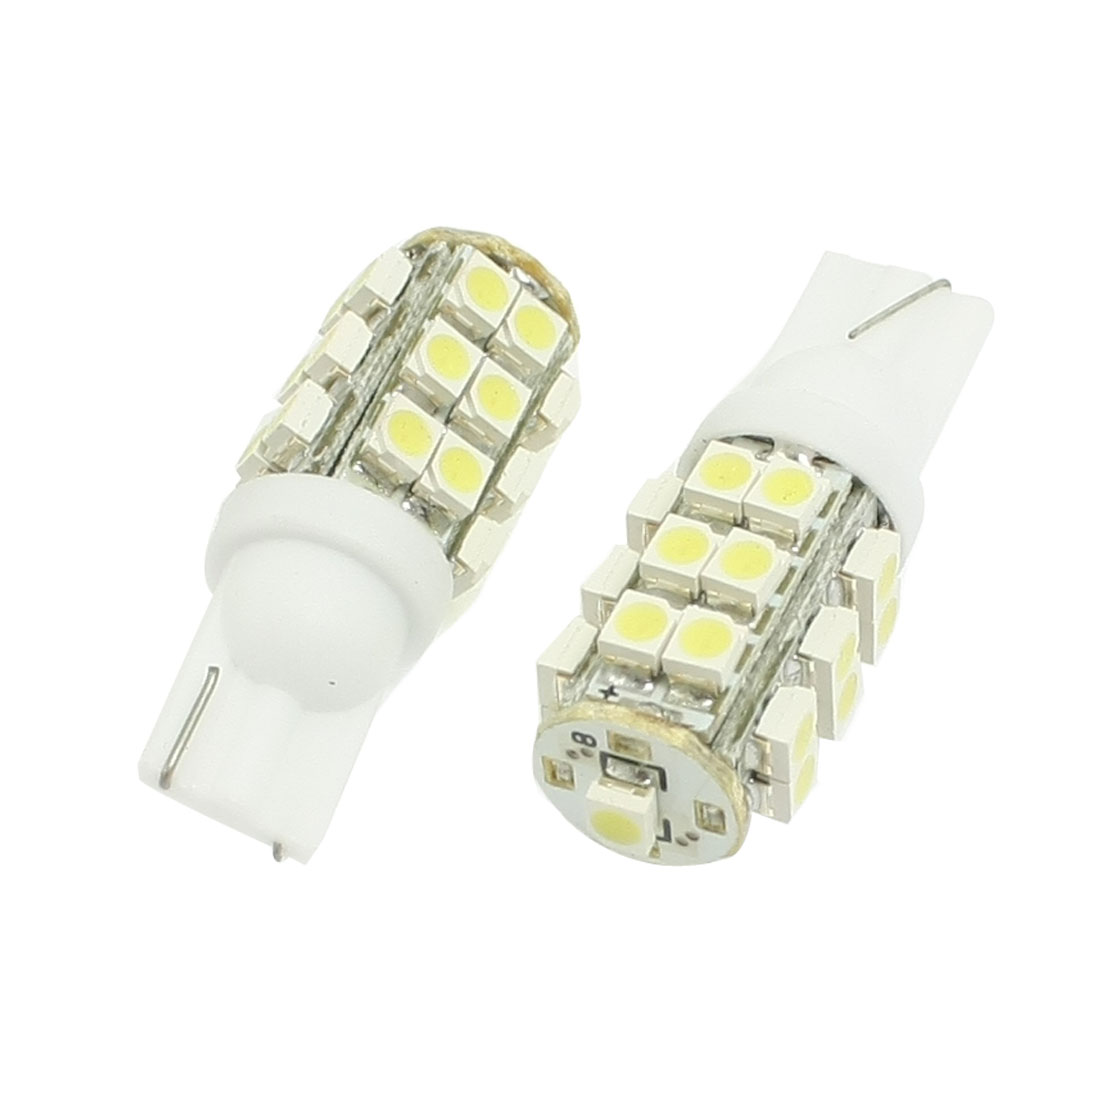 2-Pcs-White-T10-W5W-904-1210-SMD-25-LED-Indicator-Sidemarker-Lights-Bulbs